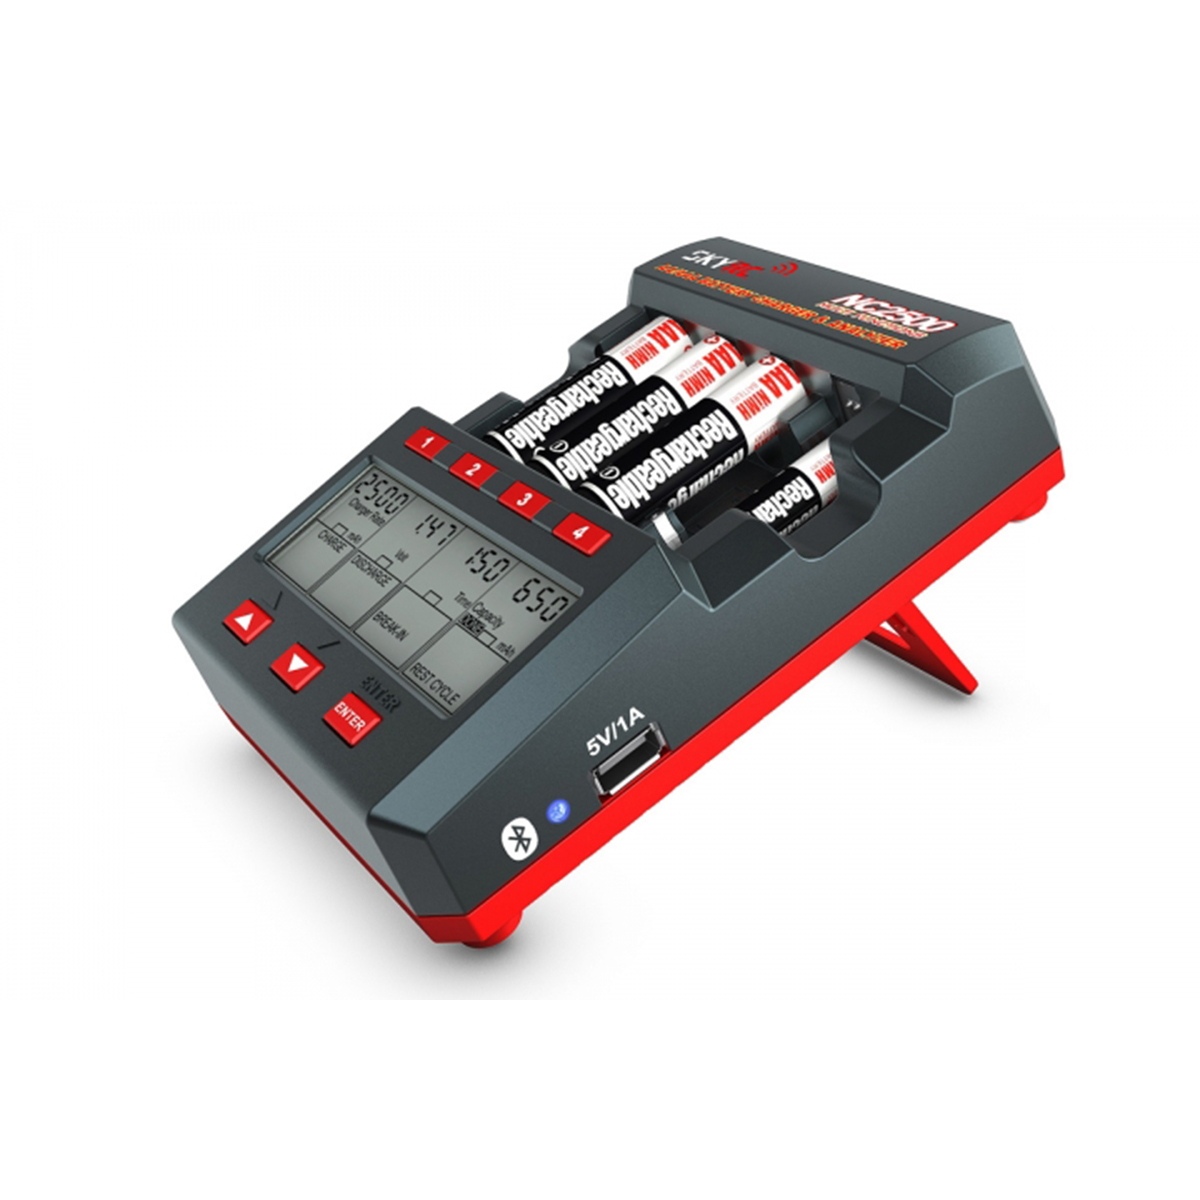 Skyrc Nc2500 Aa Aaa Nimh Battery Charger Amp Analyzer At